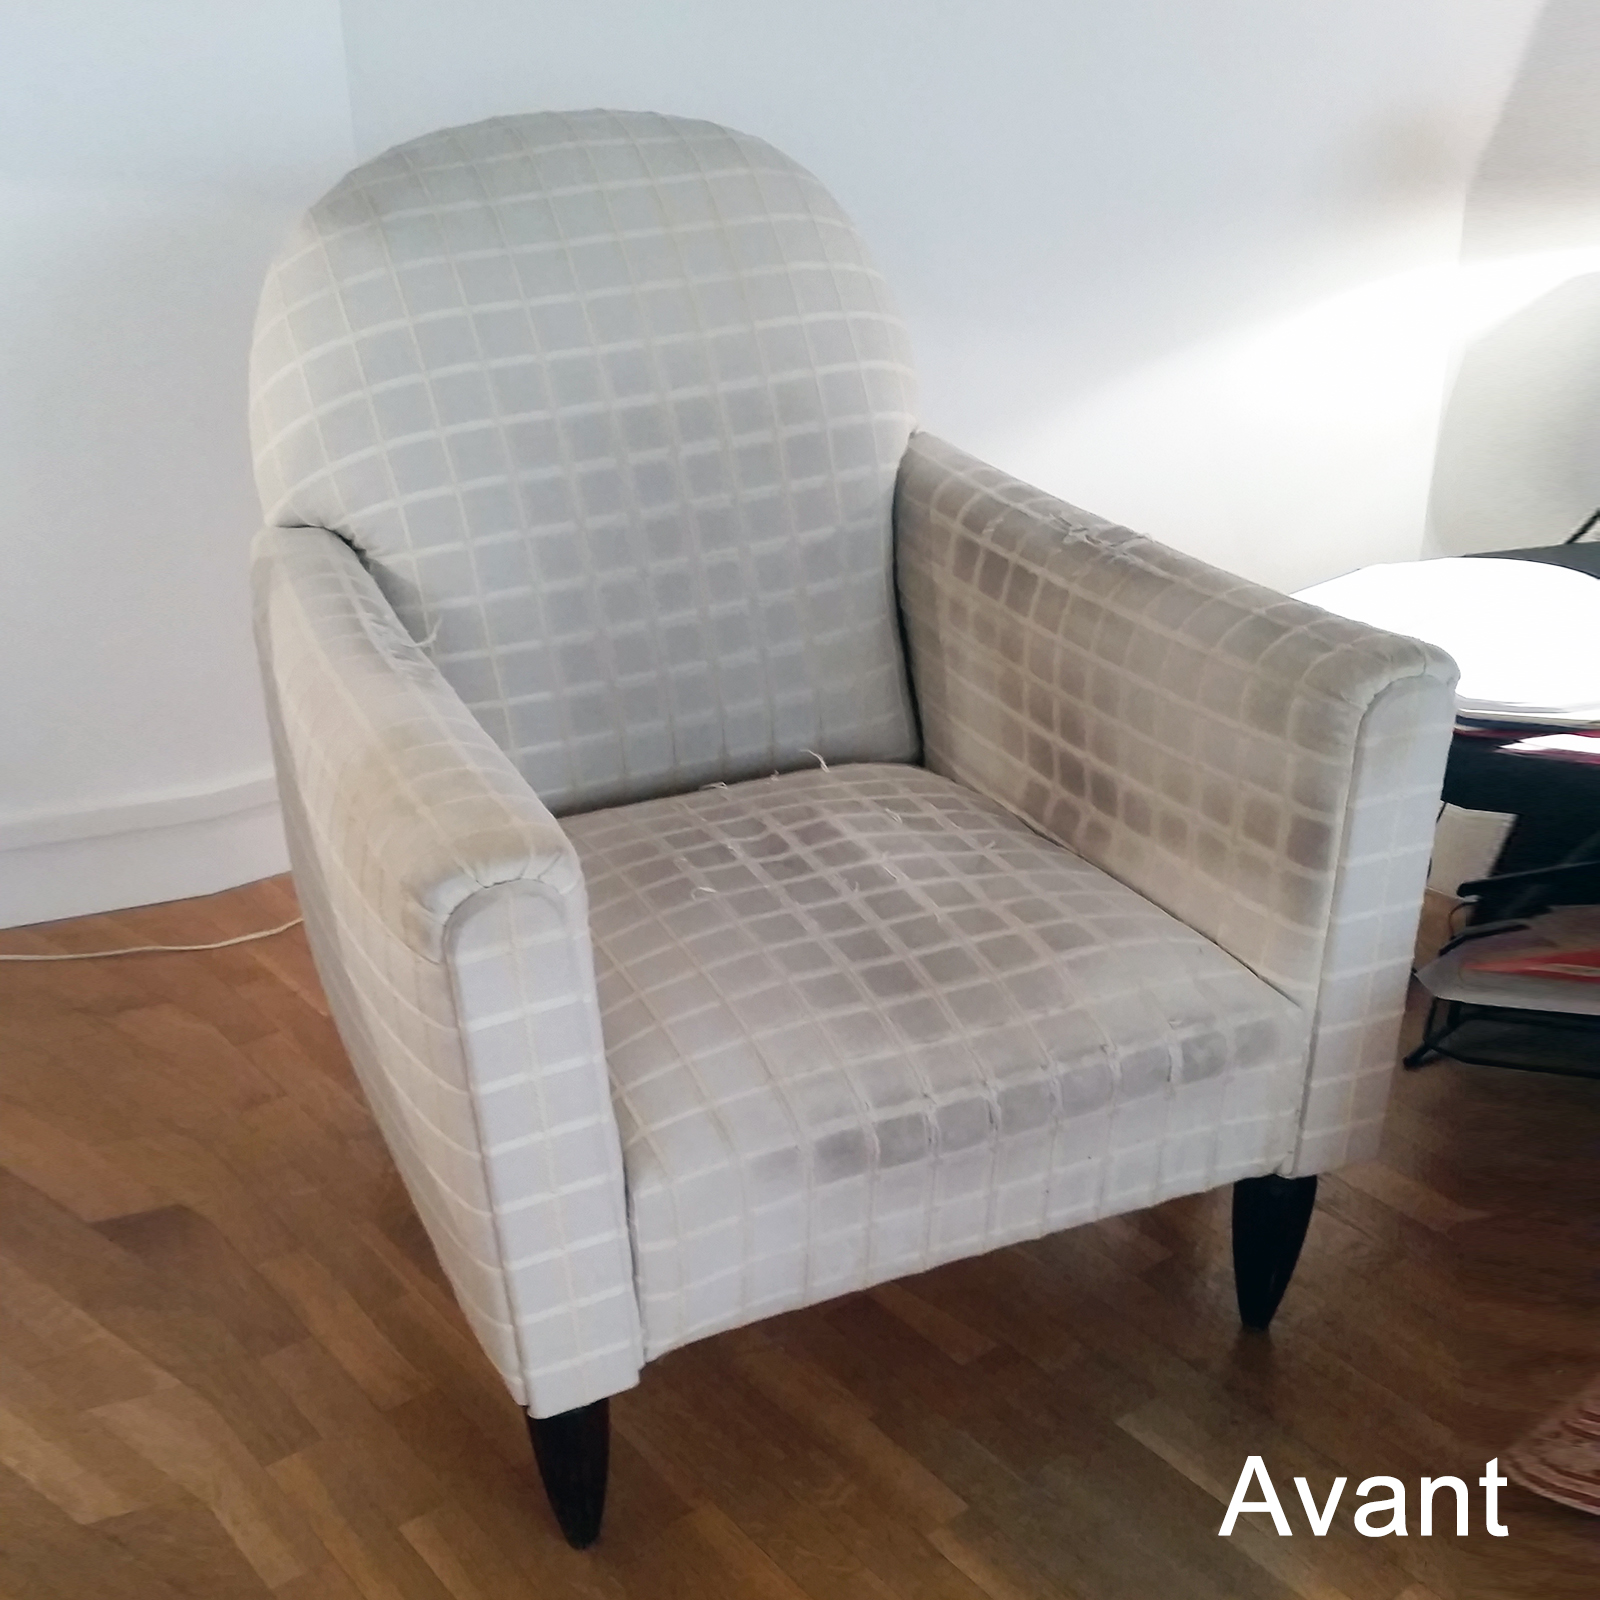 avant apr s fauteuil ann es 20 dossier inclinable atelier velvet artisan tapissier paris 10e. Black Bedroom Furniture Sets. Home Design Ideas